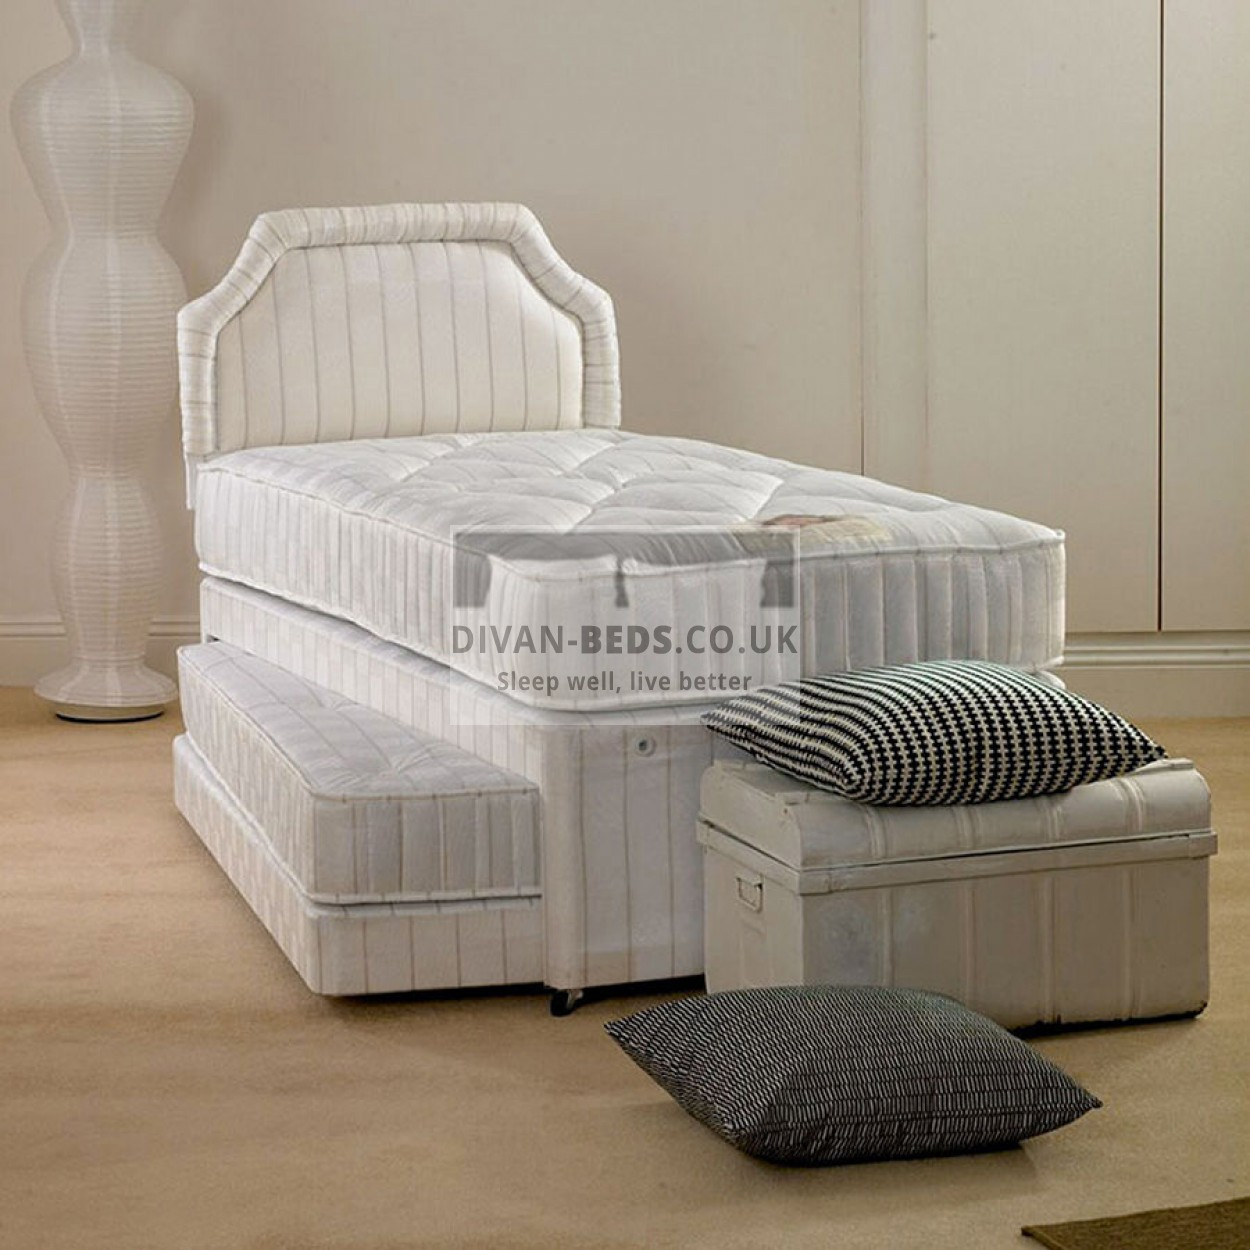 Duncan single divan 2 in 1 guest bed with mattresses guaranteed cheapest free fast delivery Divan single beds